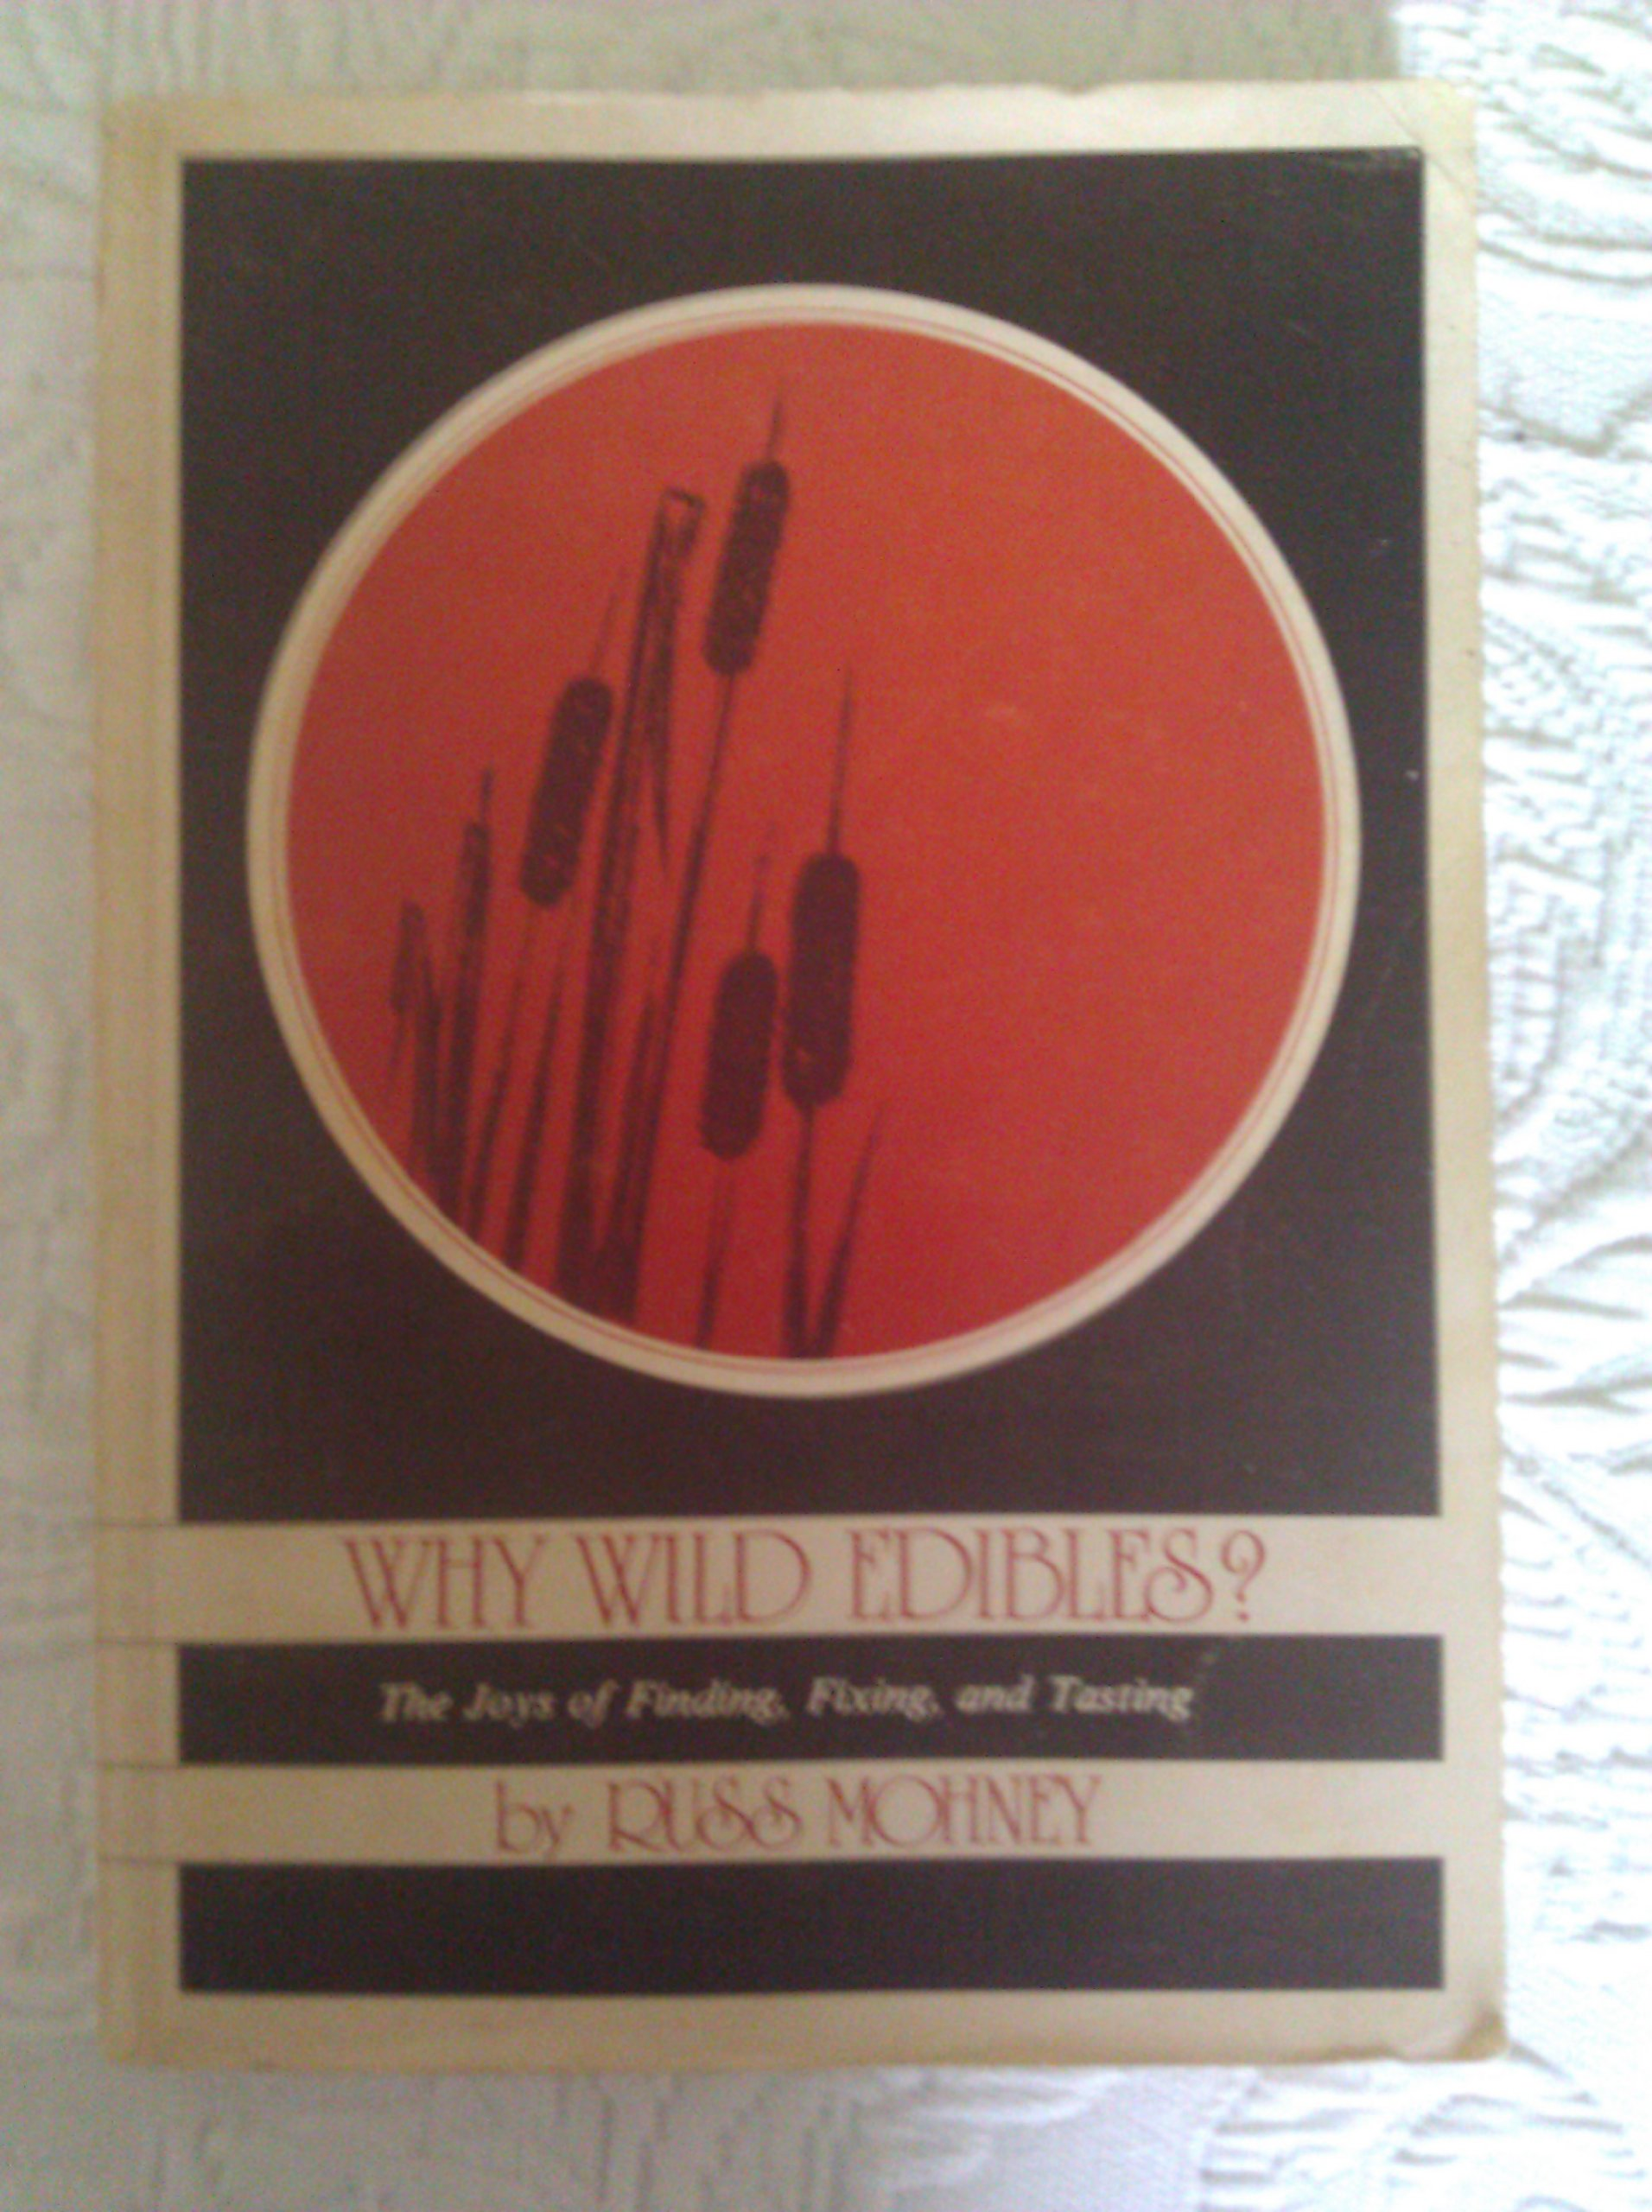 Why wild edibles?: The joys of finding, fixing, and tasting west of the Rockies, Mohney, Russ